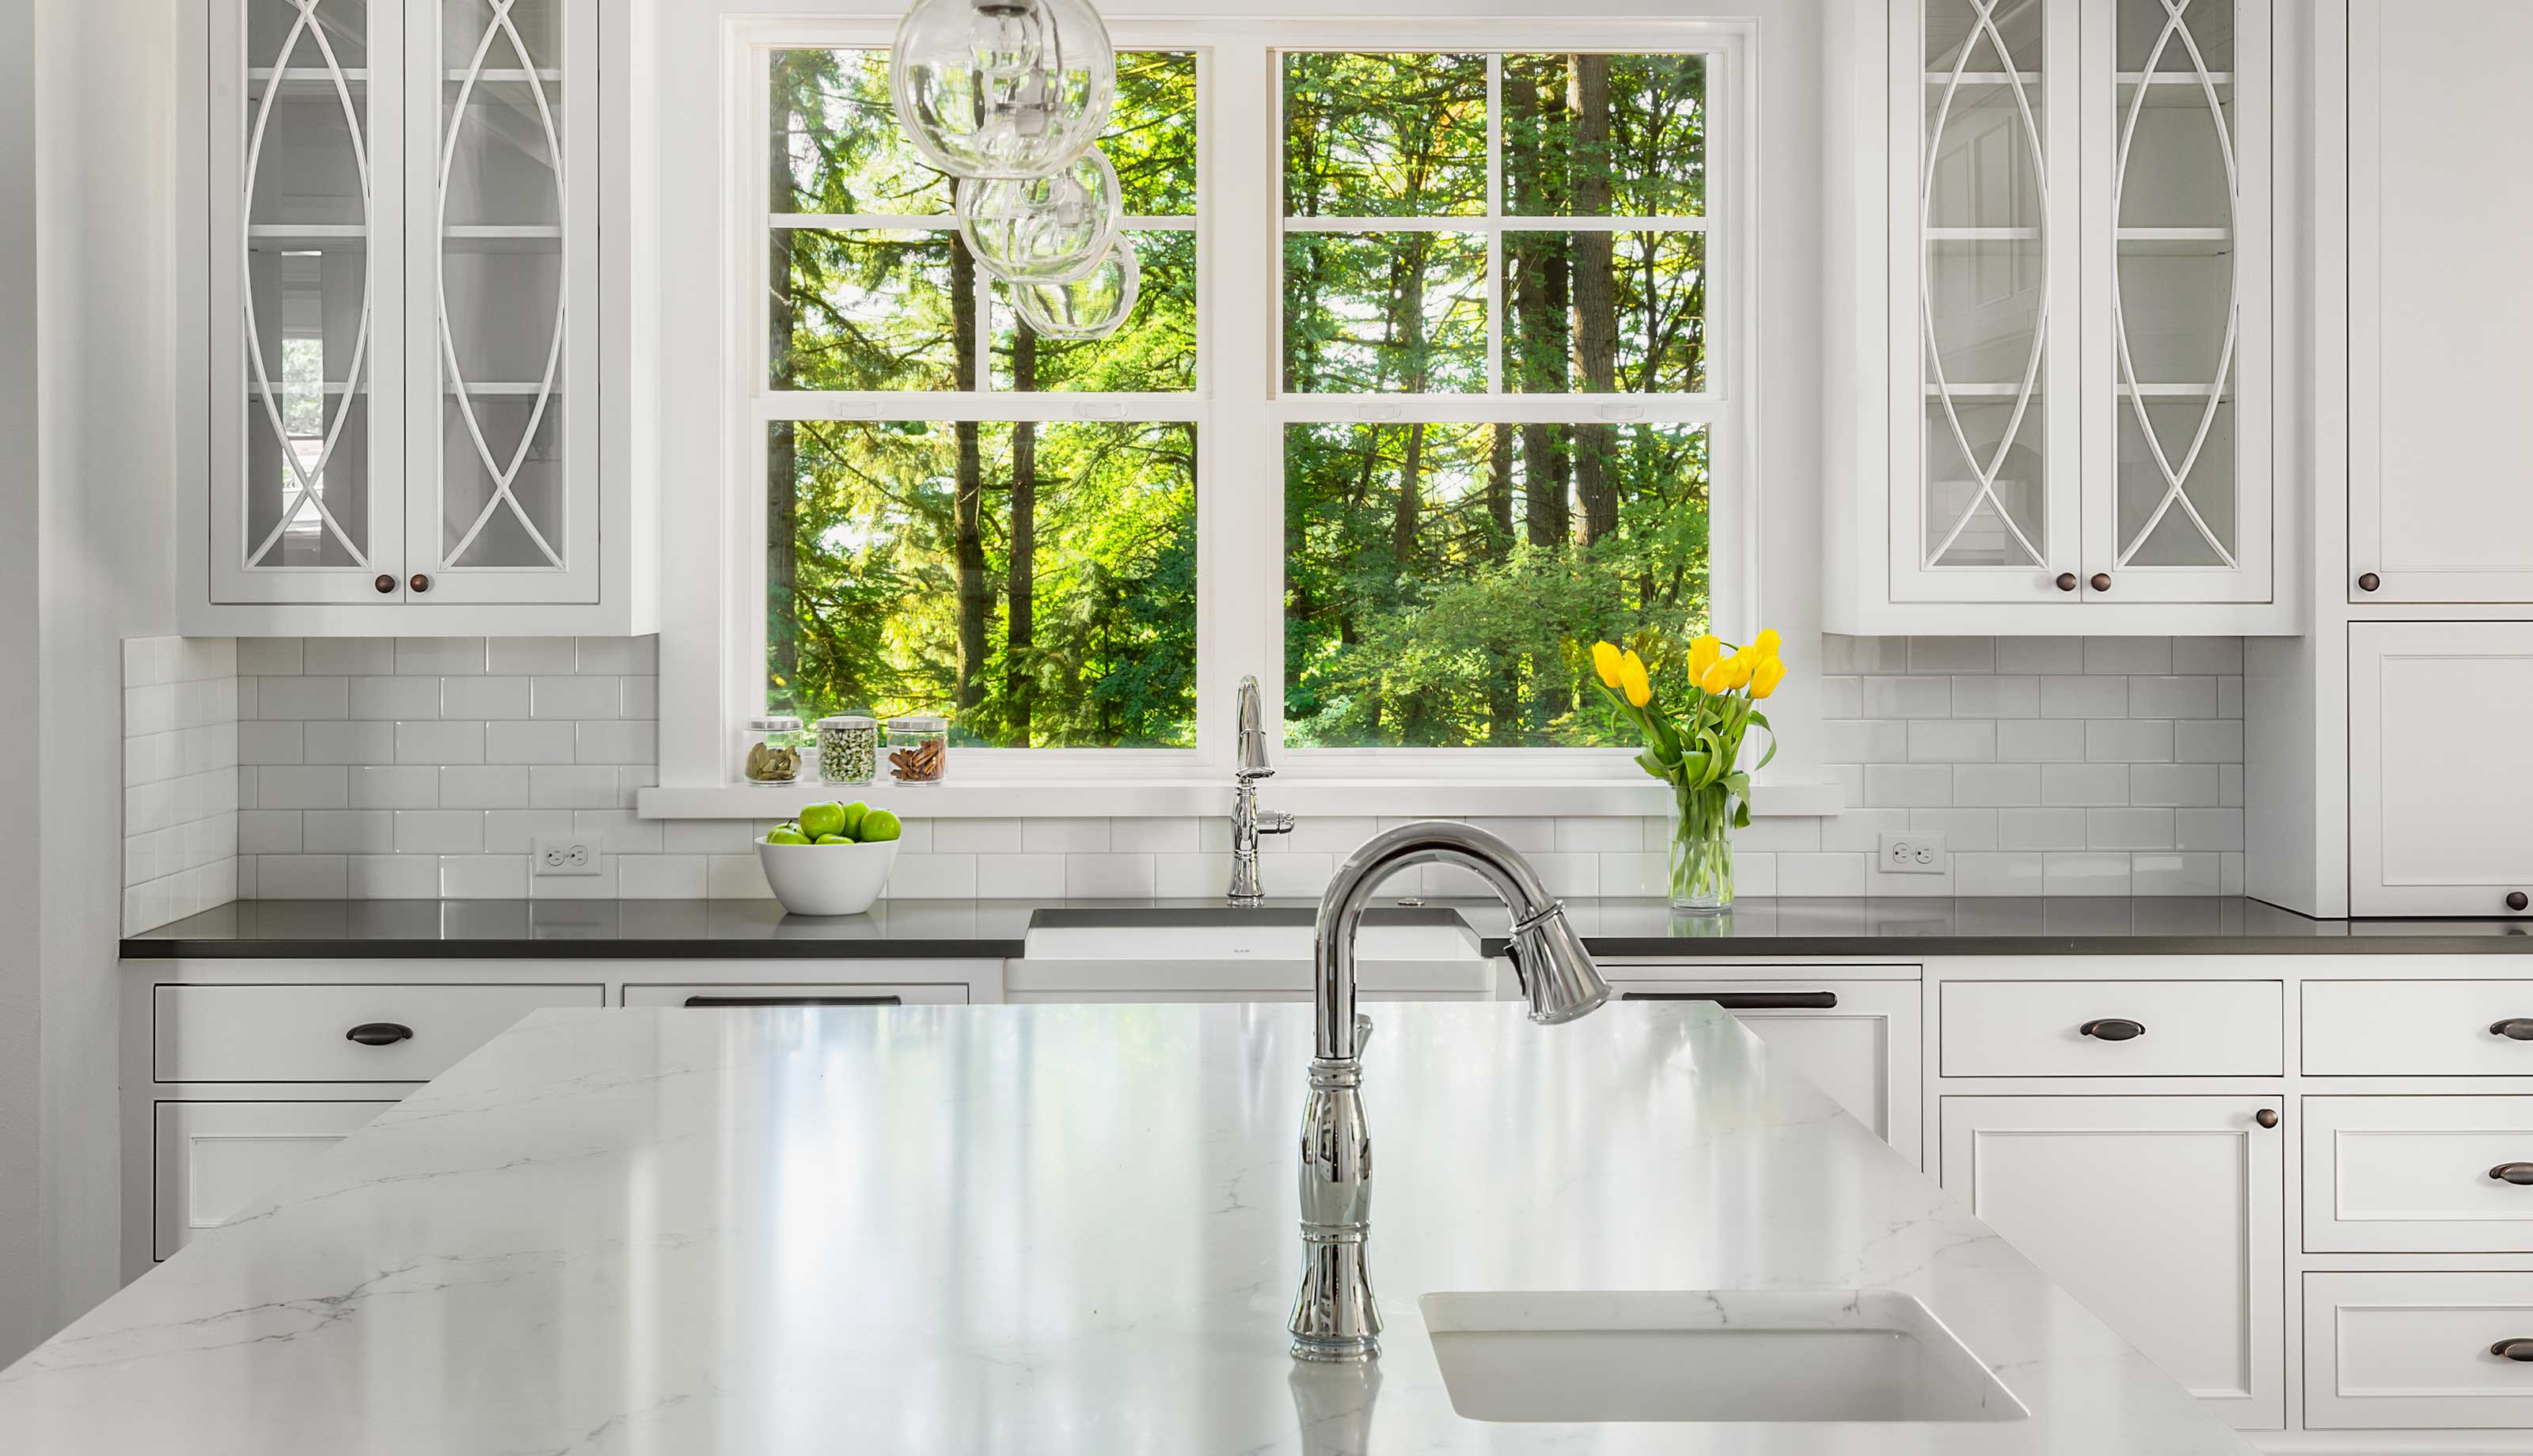 ideas pinterest countertops top pricea cool kitchen dream pricej prices images best on countertop caesarstone gallery white price reviews